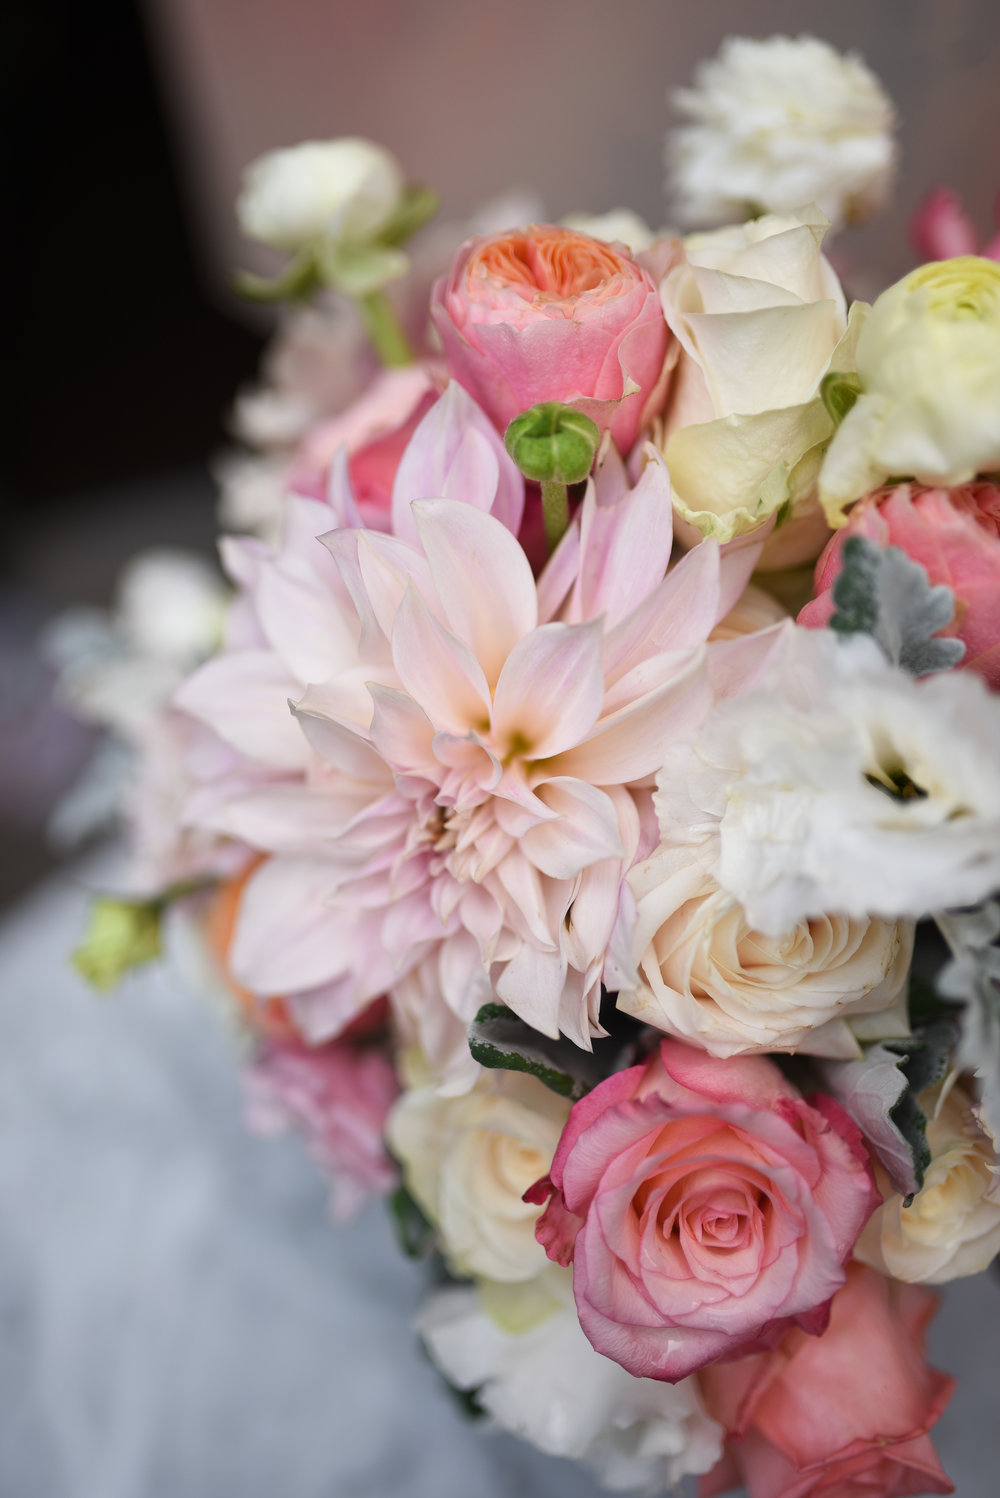 A closeup of the dahlias and garden roses in the bridal bouquet for this fall wedding at MyMoon